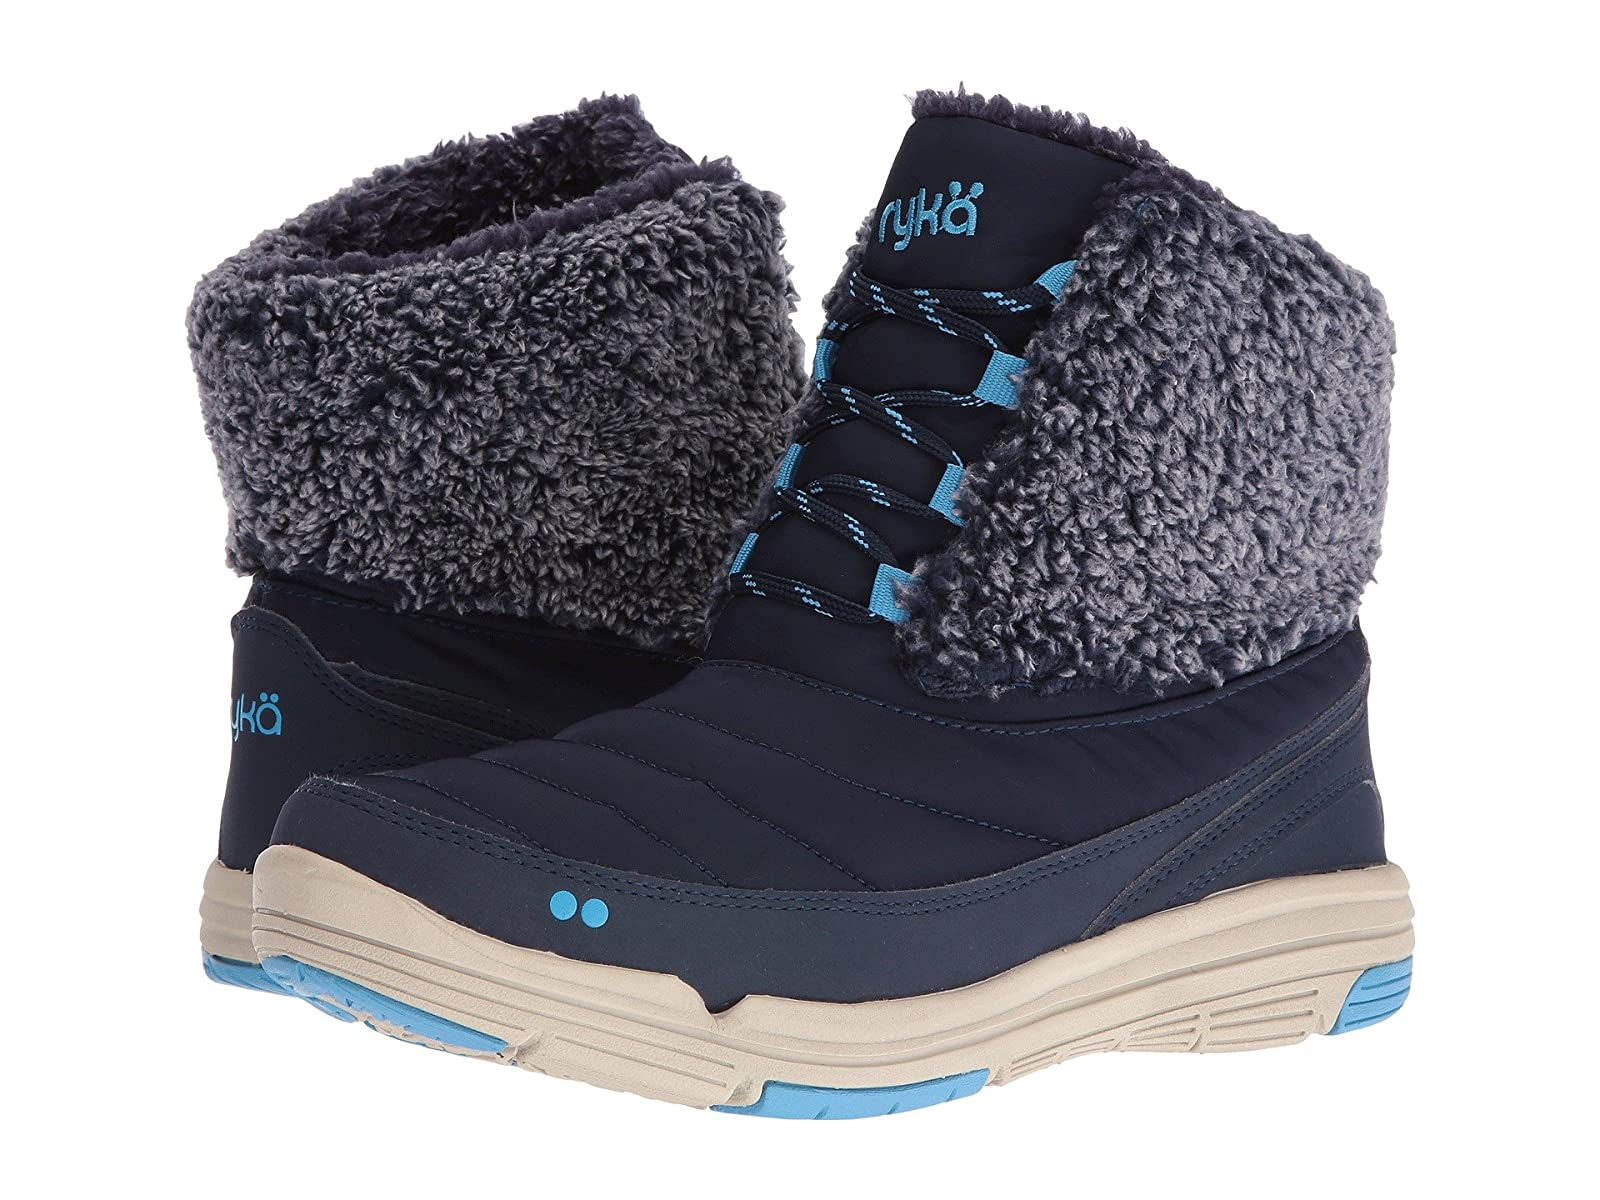 Ryka AddisonCheap and distinctive eye-catching shoes